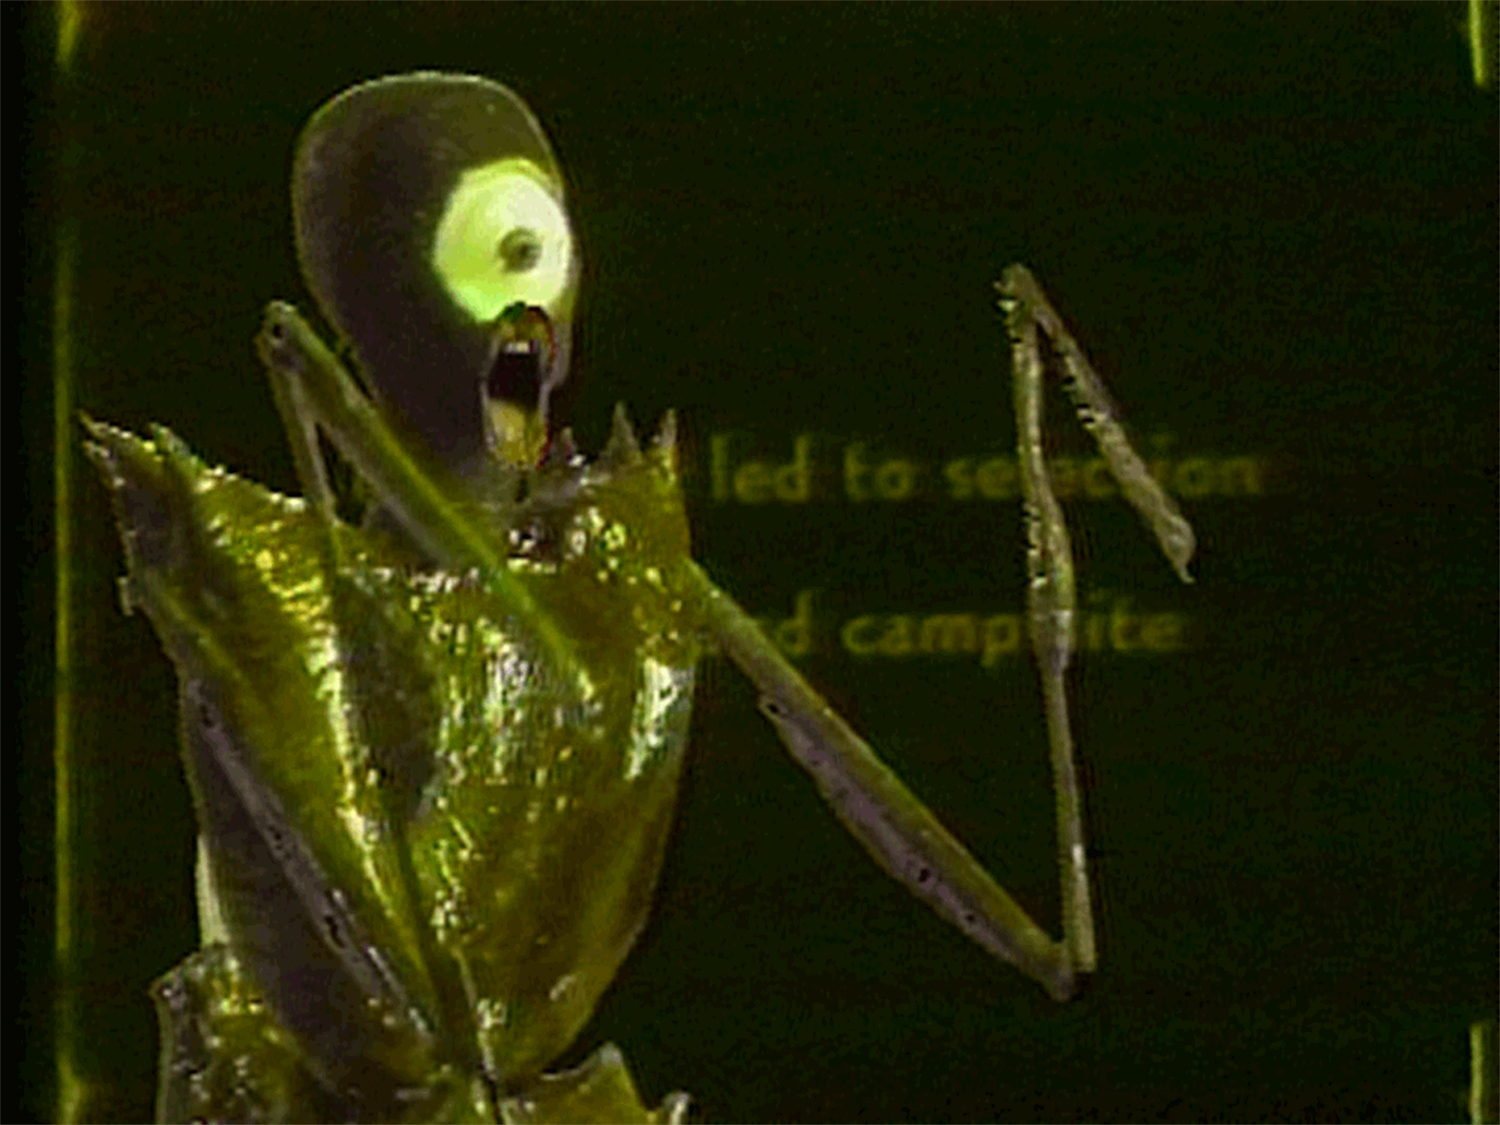 I Want Some Insecticide 1986 Branda Miller  Single-channel, B&W and colour video, sound, 3:53 min Video still courtesy of Branda Miller and Electronic Arts Intermix (EAI), New York